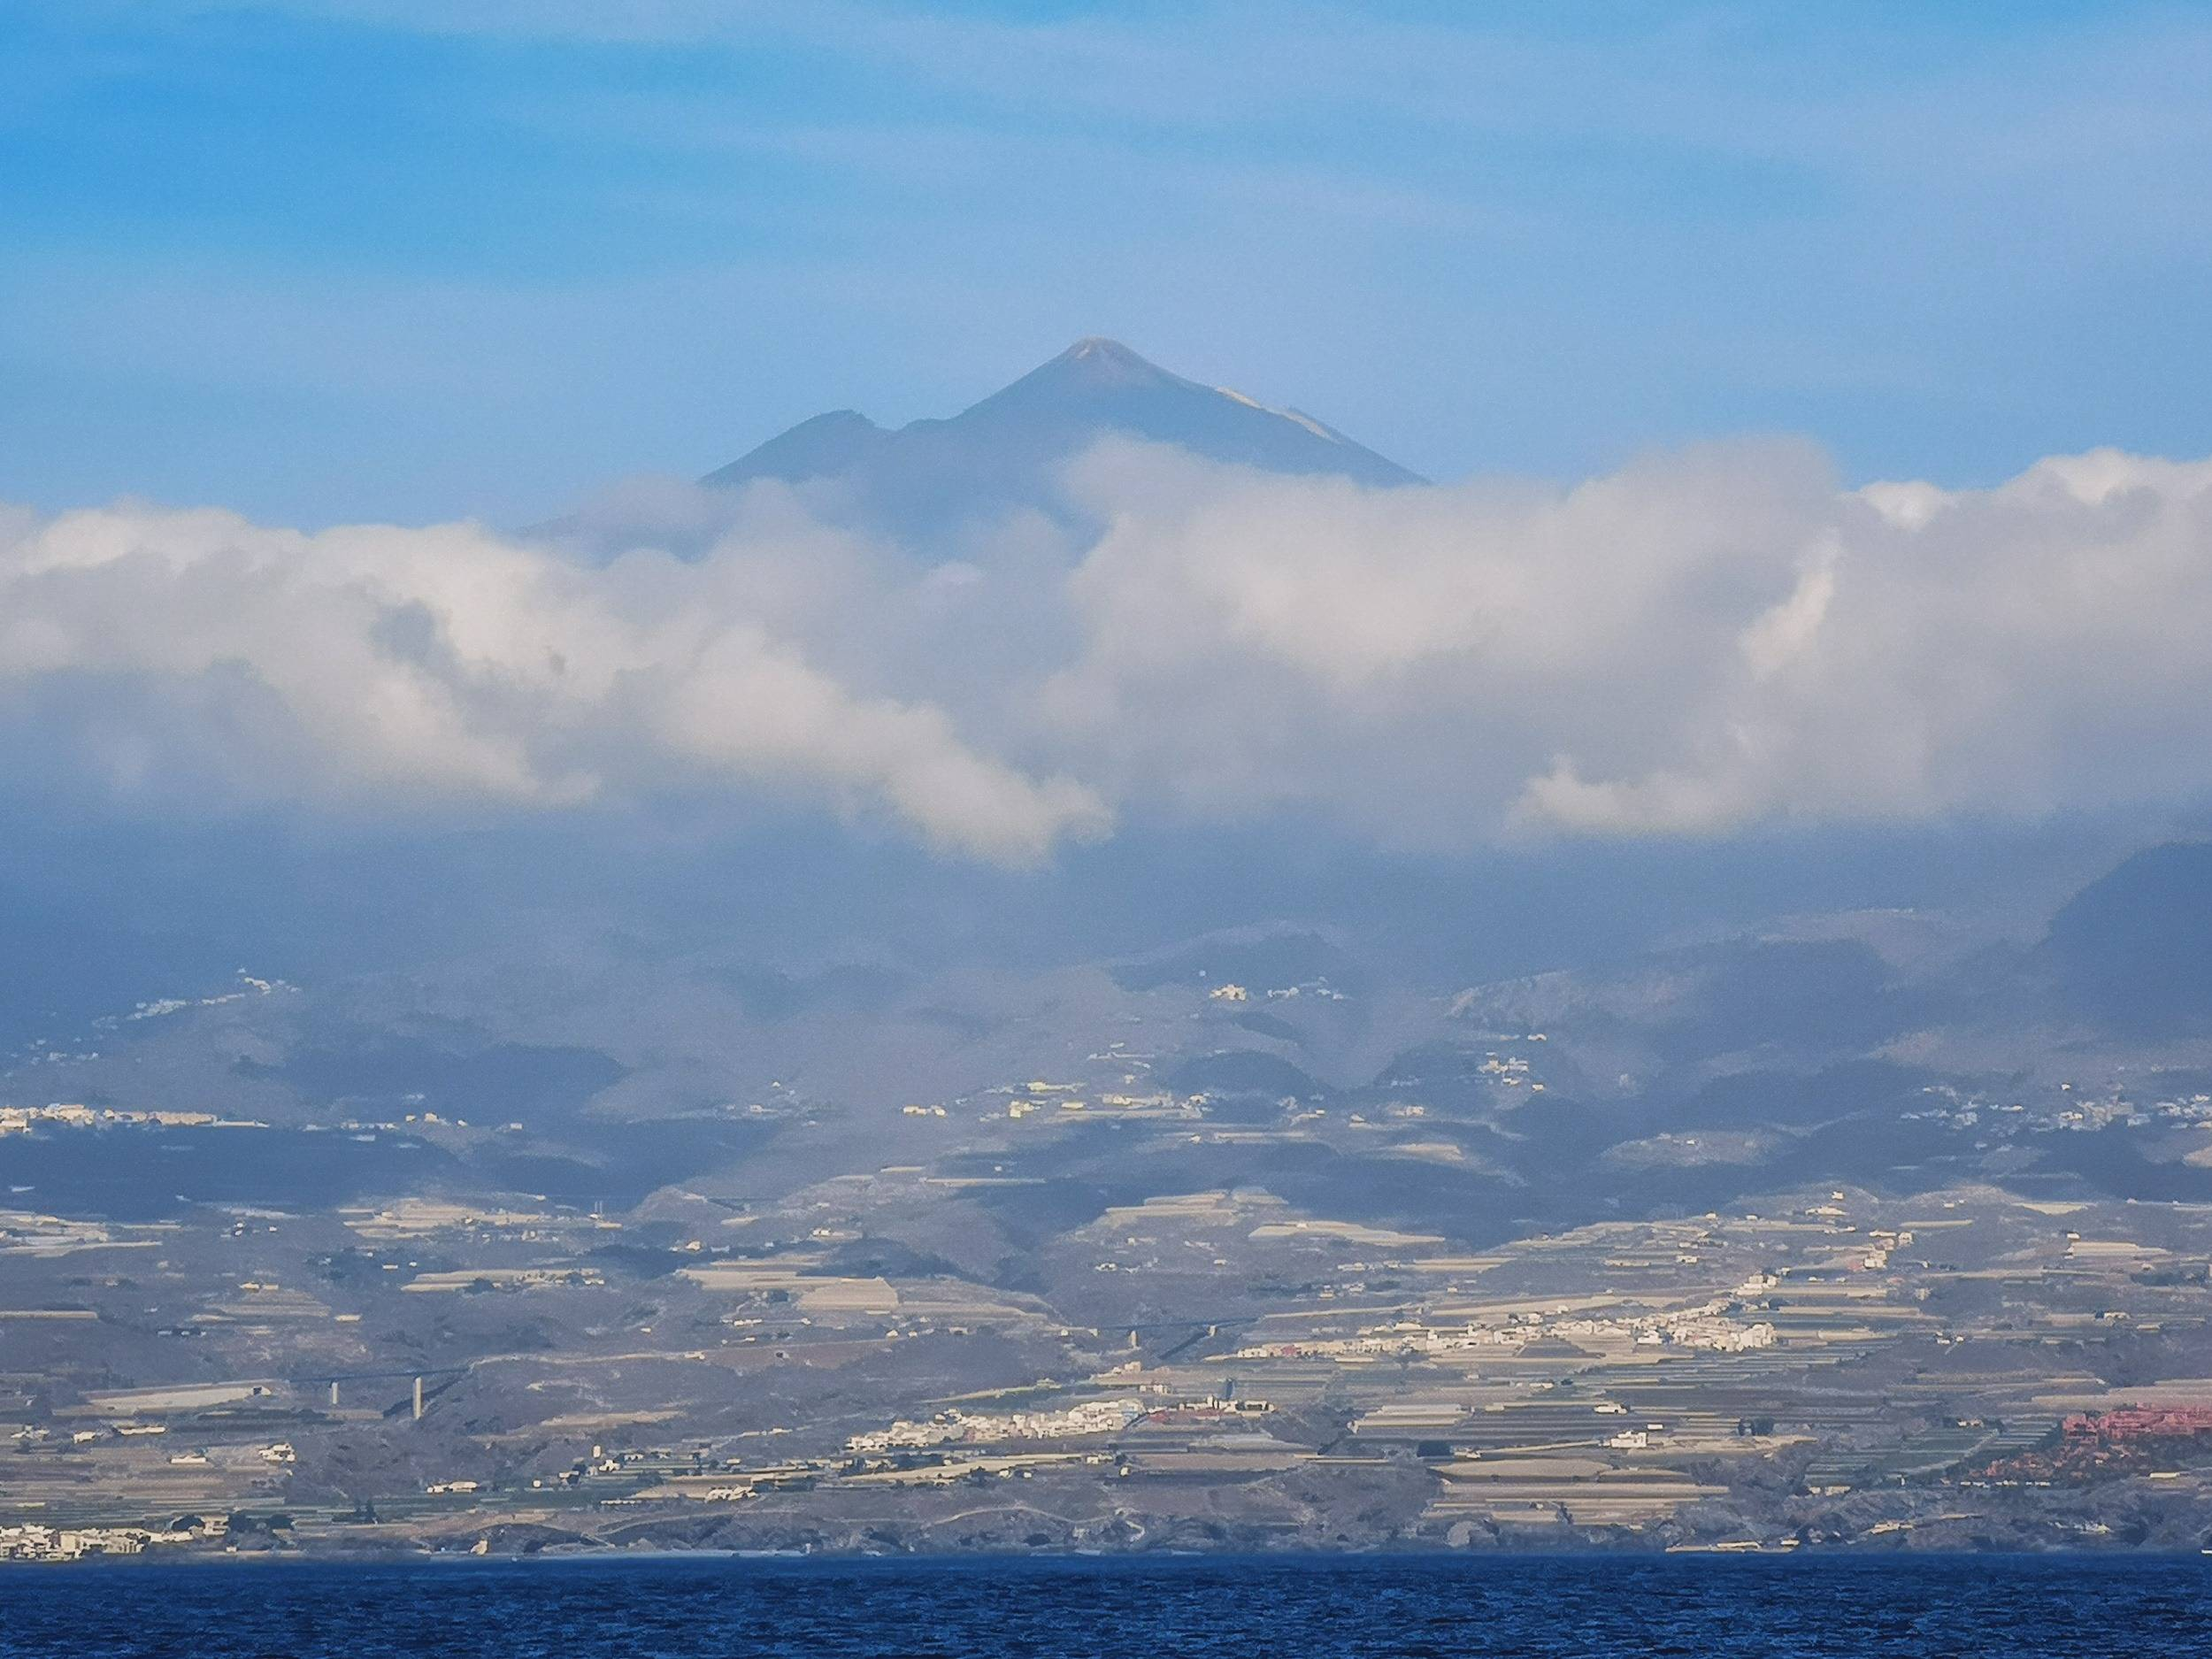 It is a popular challenge to climb Mount Teide from the sea level. Photo by Alis Monte [CC BY-SA 4.0], via Connecting the Dots